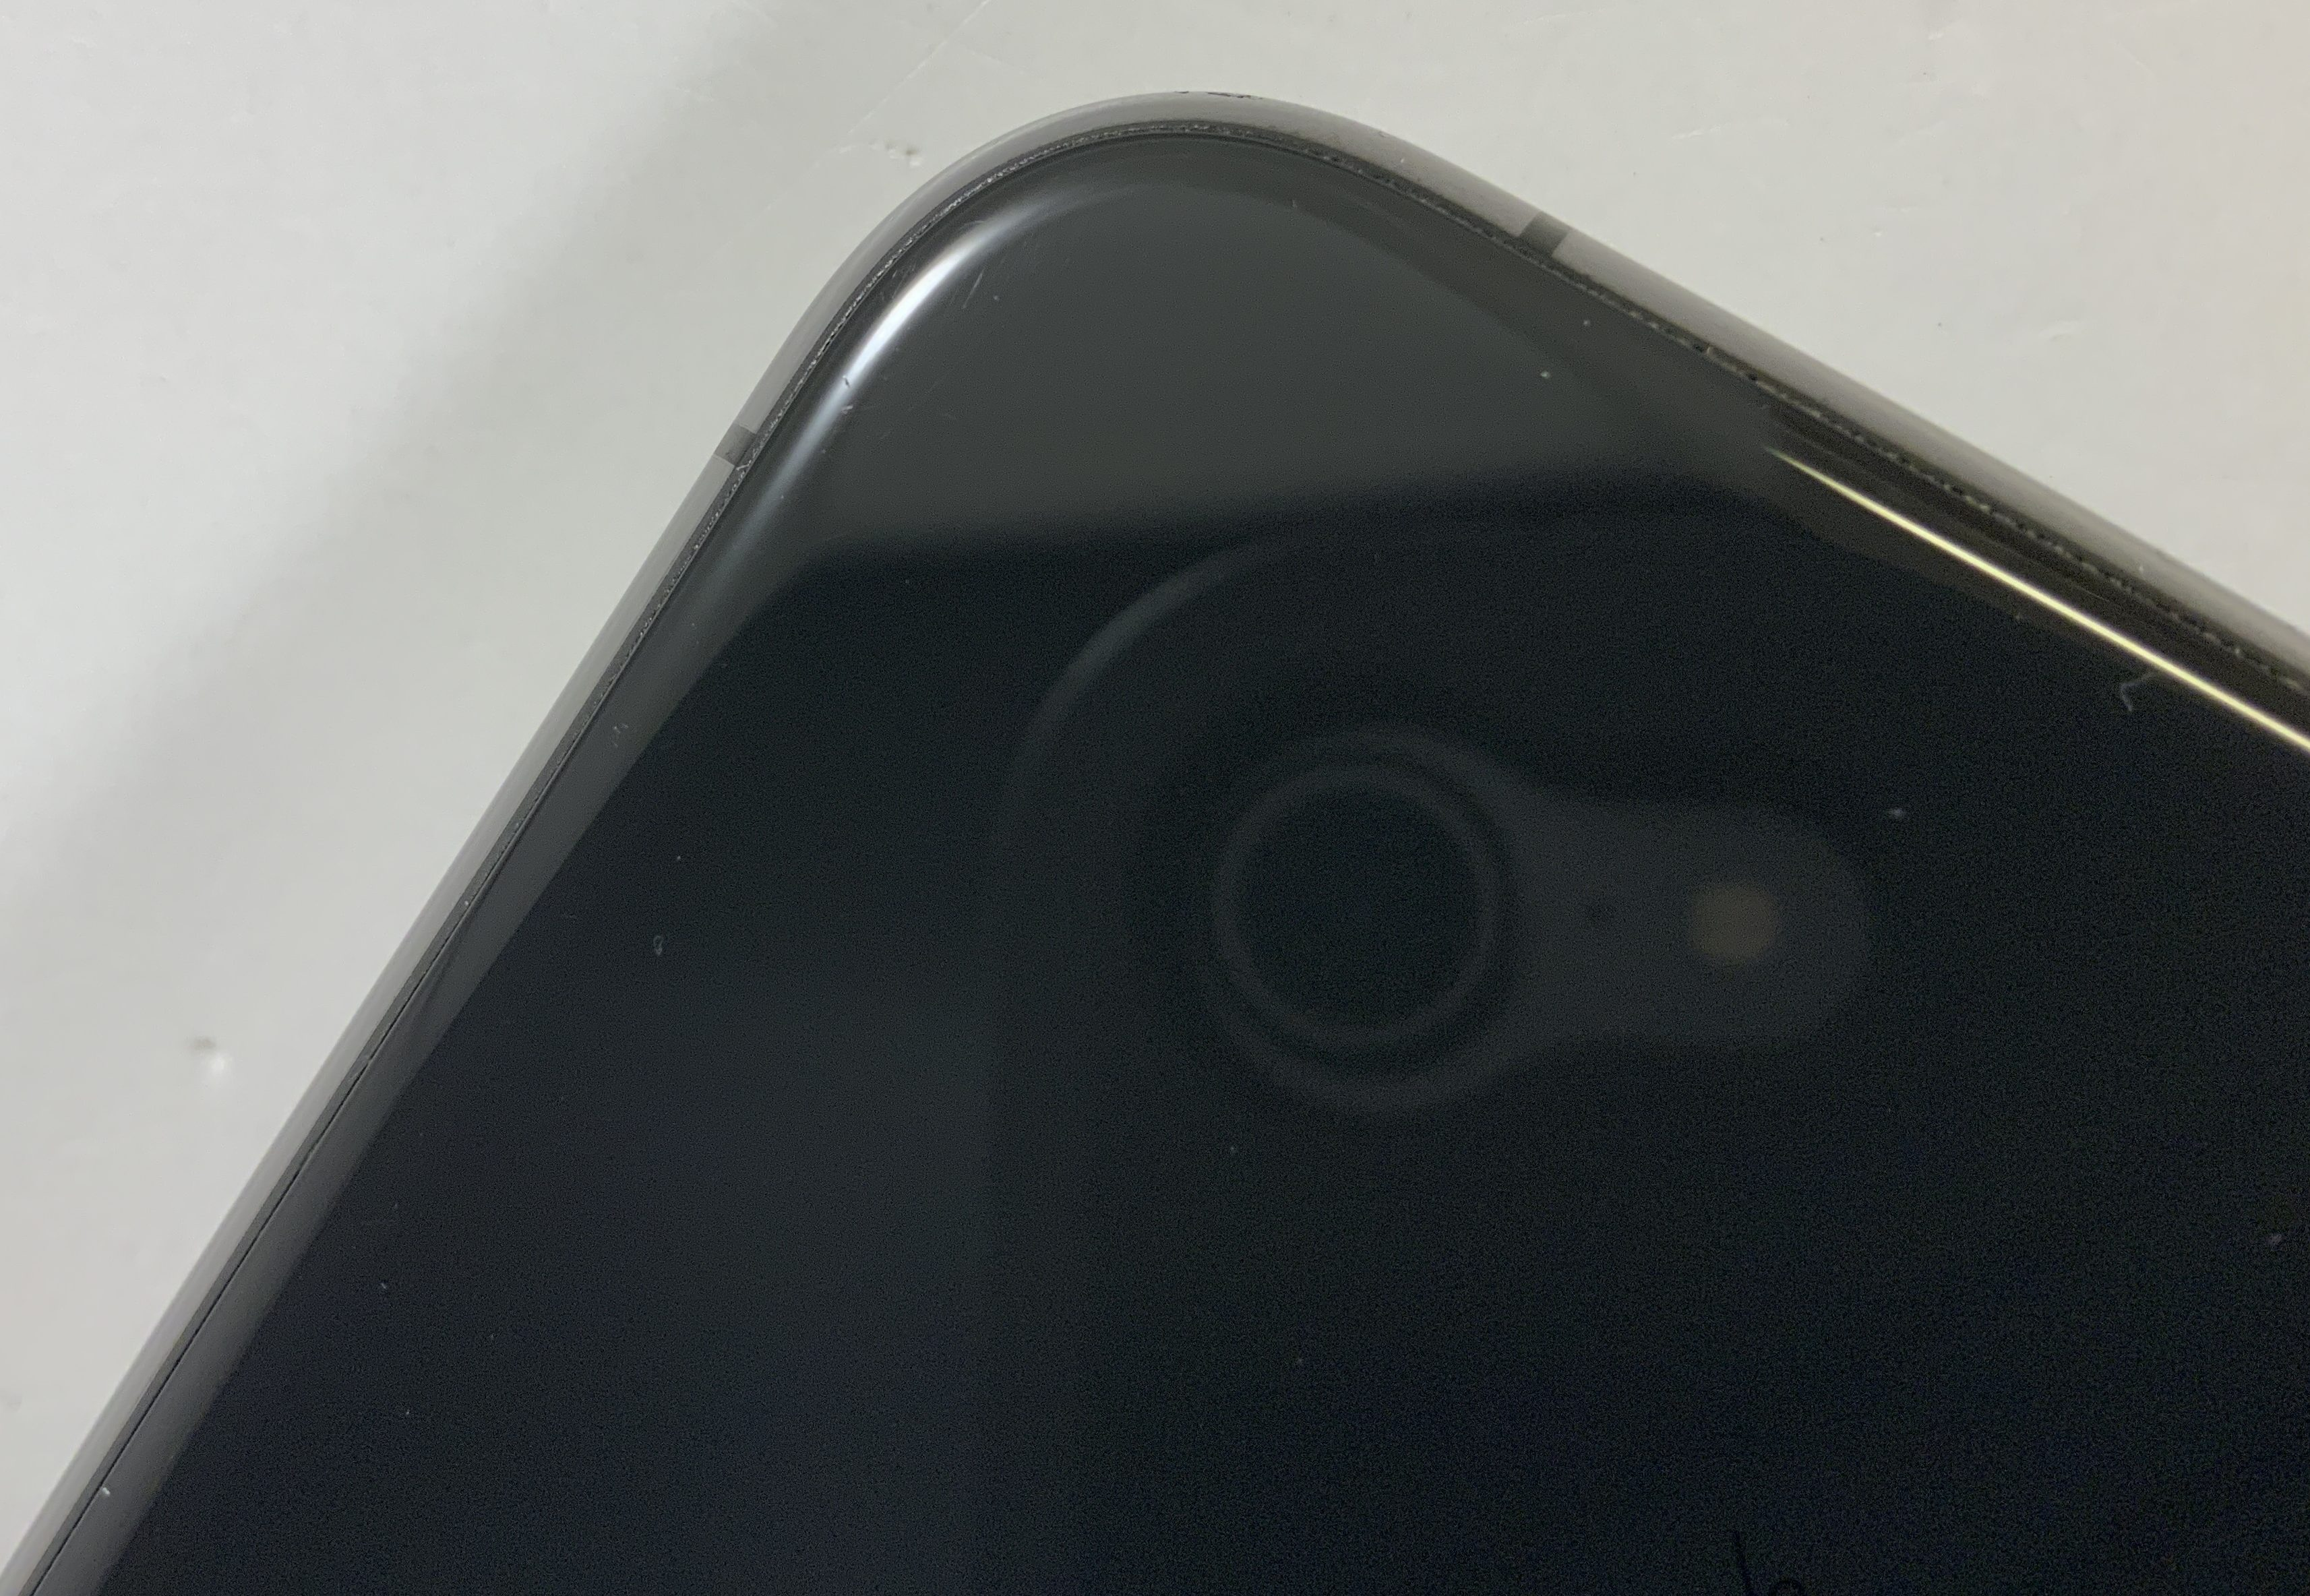 iPhone XS Max 64GB, 64GB, Space Gray, image 4